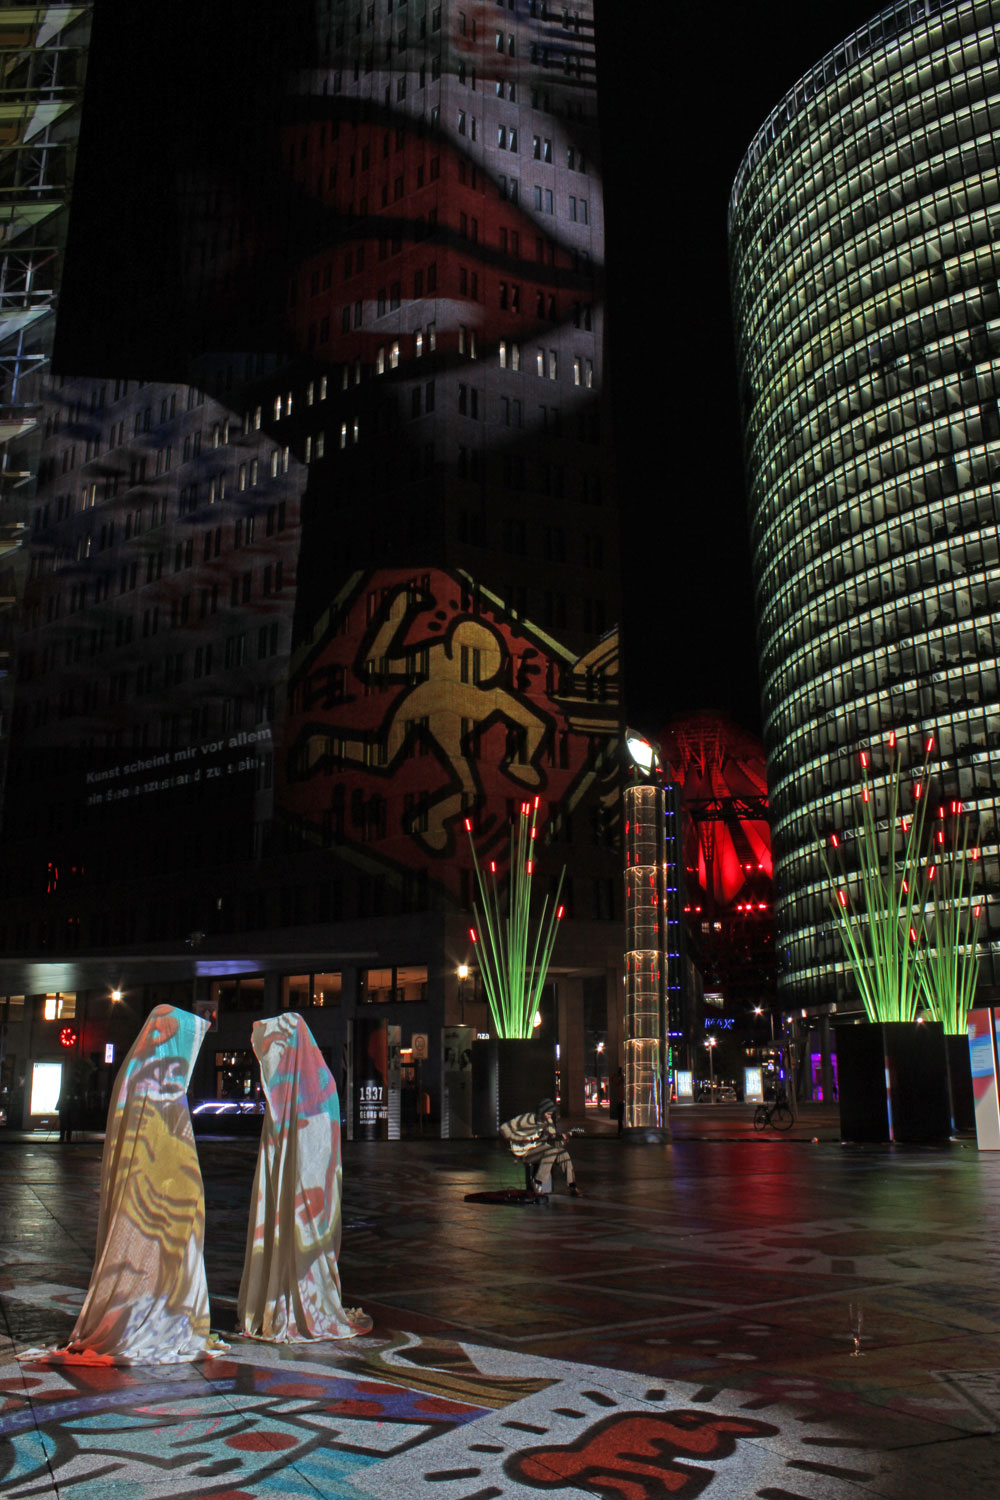 festival-of-lights-potzdamer-platz-berlin-germany-guardians-of-time-manfred-kielnhofer-waechter-der-zeit-contemporary-light-art-sculpture-8120